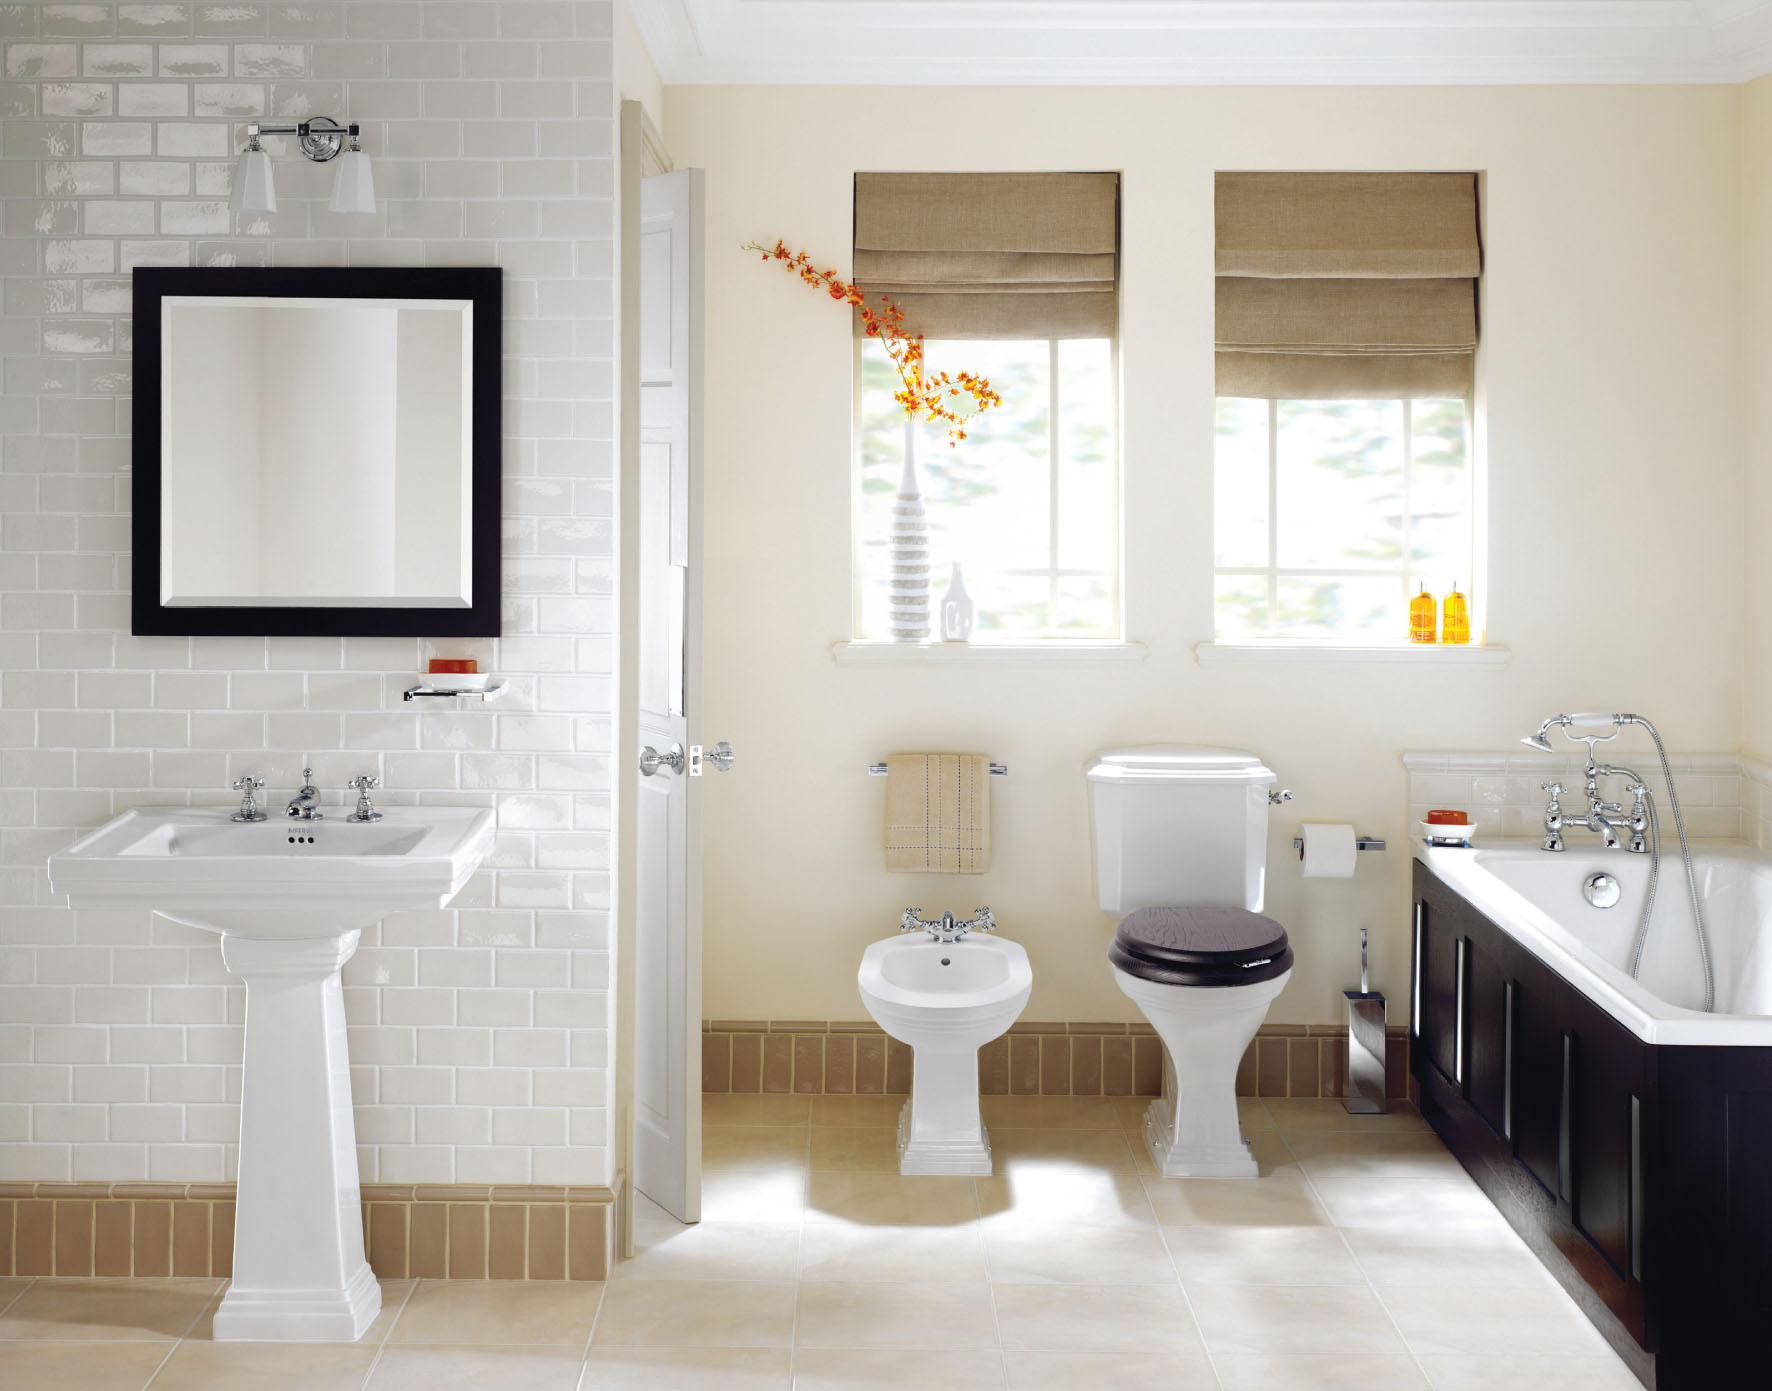 4 Design Trends For The Bathroom What You Ll See In 2015